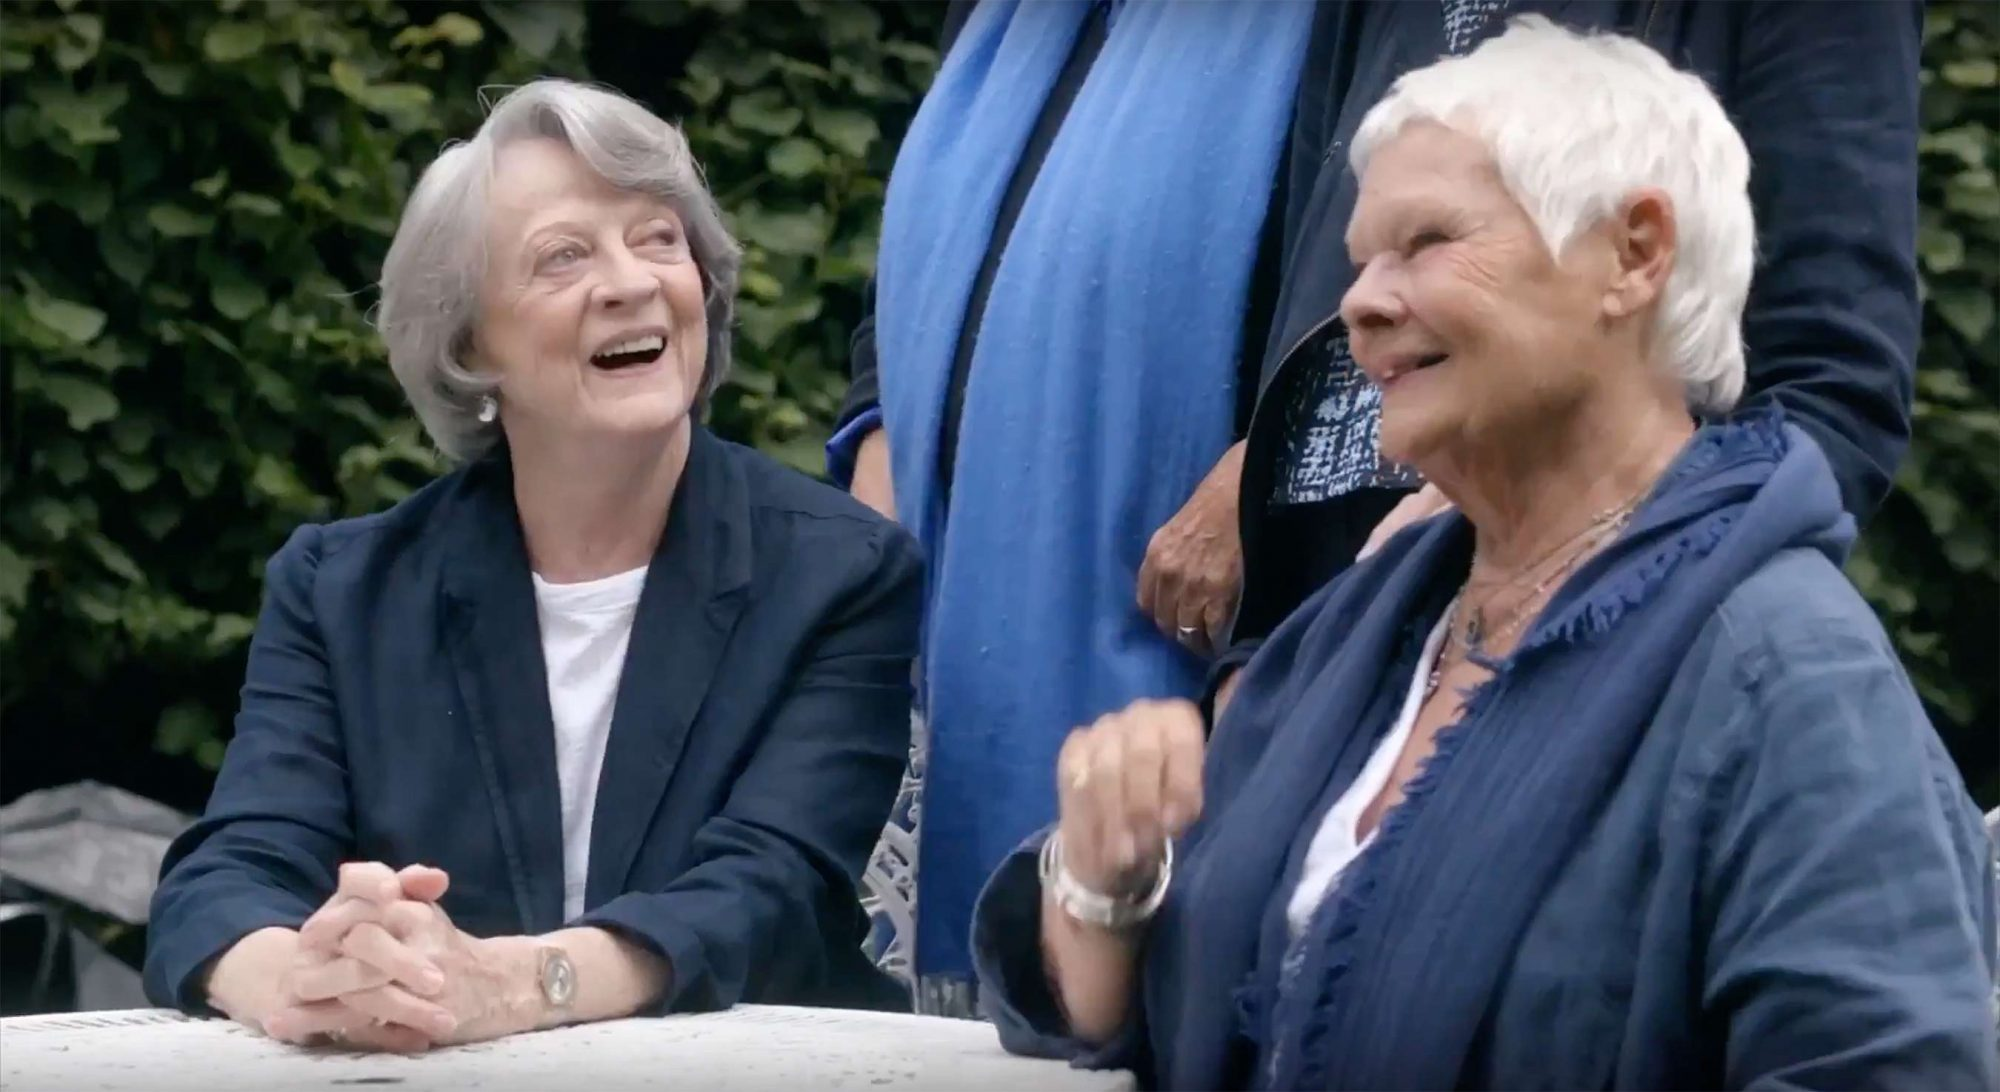 Maggie Smith and Judi Denchhttps://www.youtube.com/watch?v=BrzZ_v8C8O0